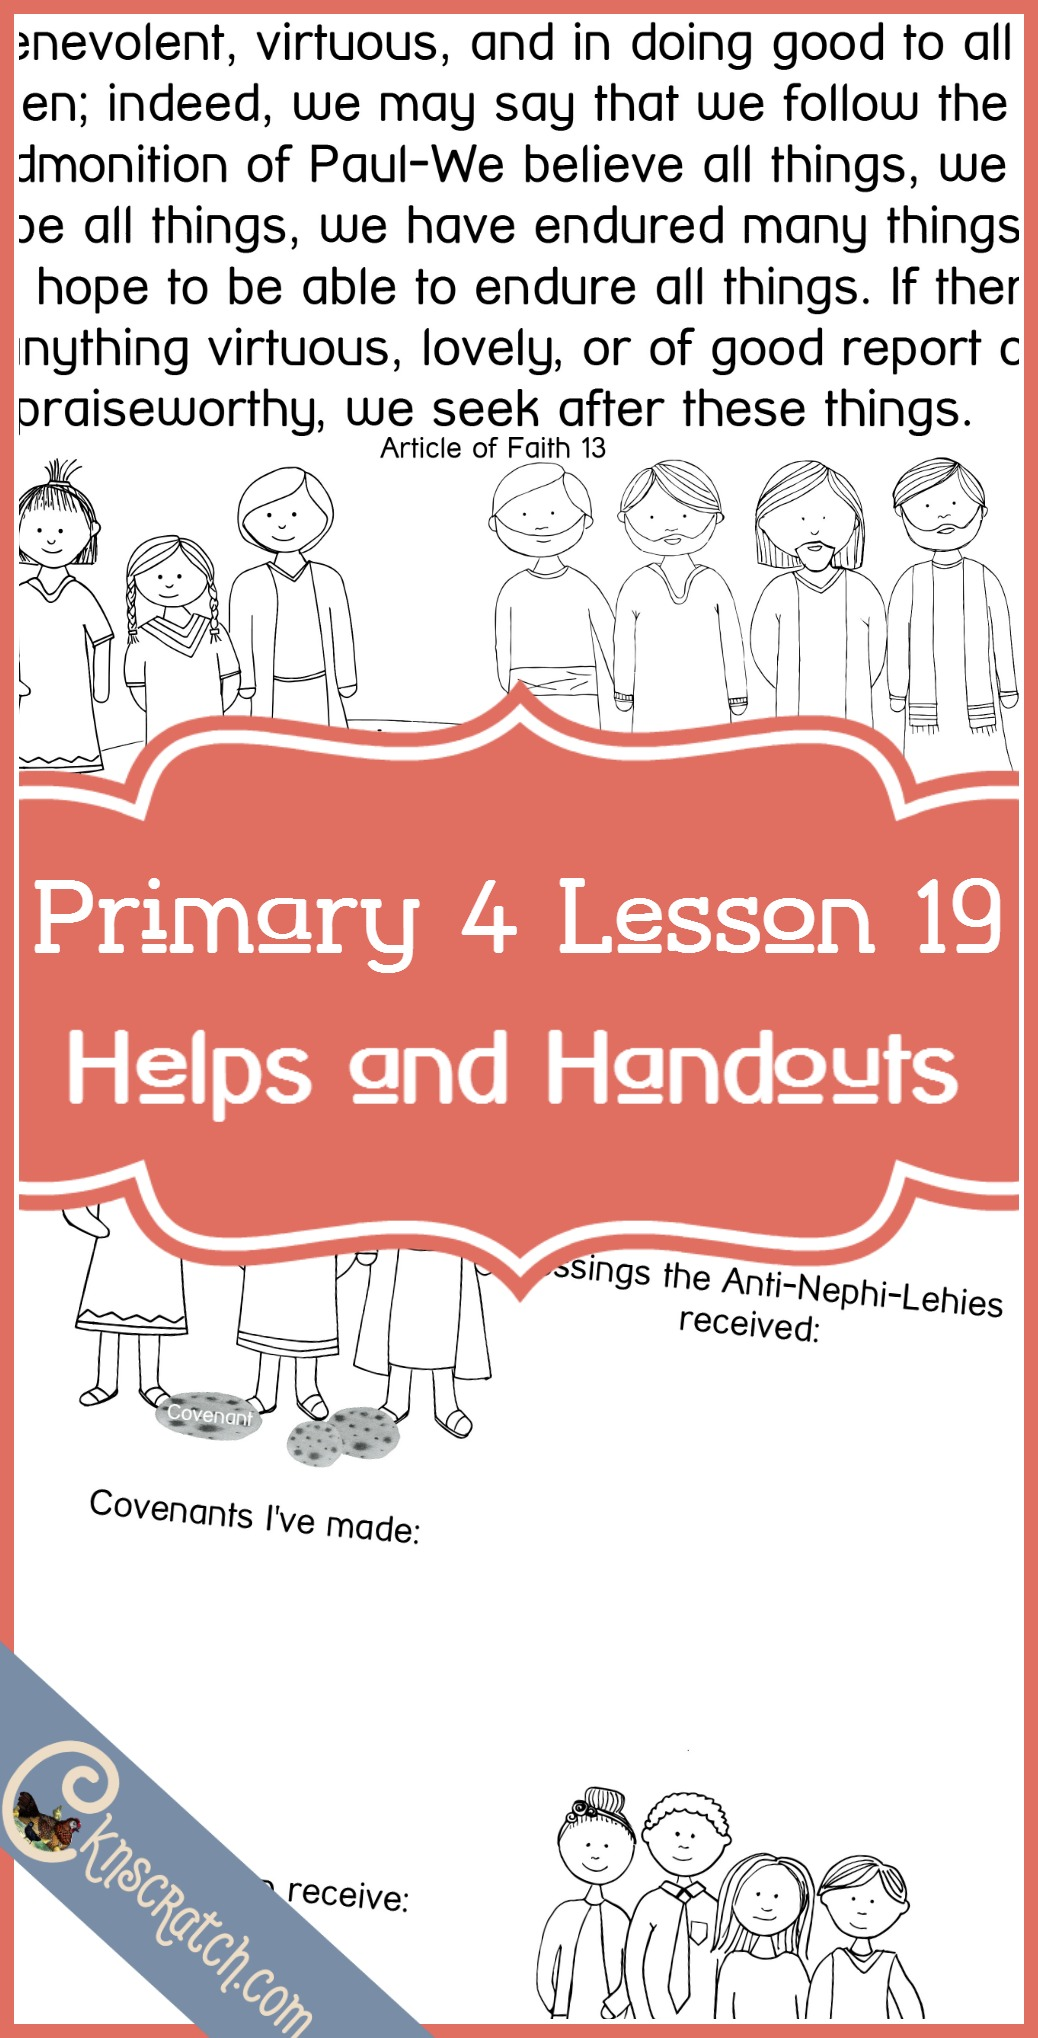 Great LDS lesson helps and handouts for Primary 4 Lesson 19: The Anti-Nephi-Lehies